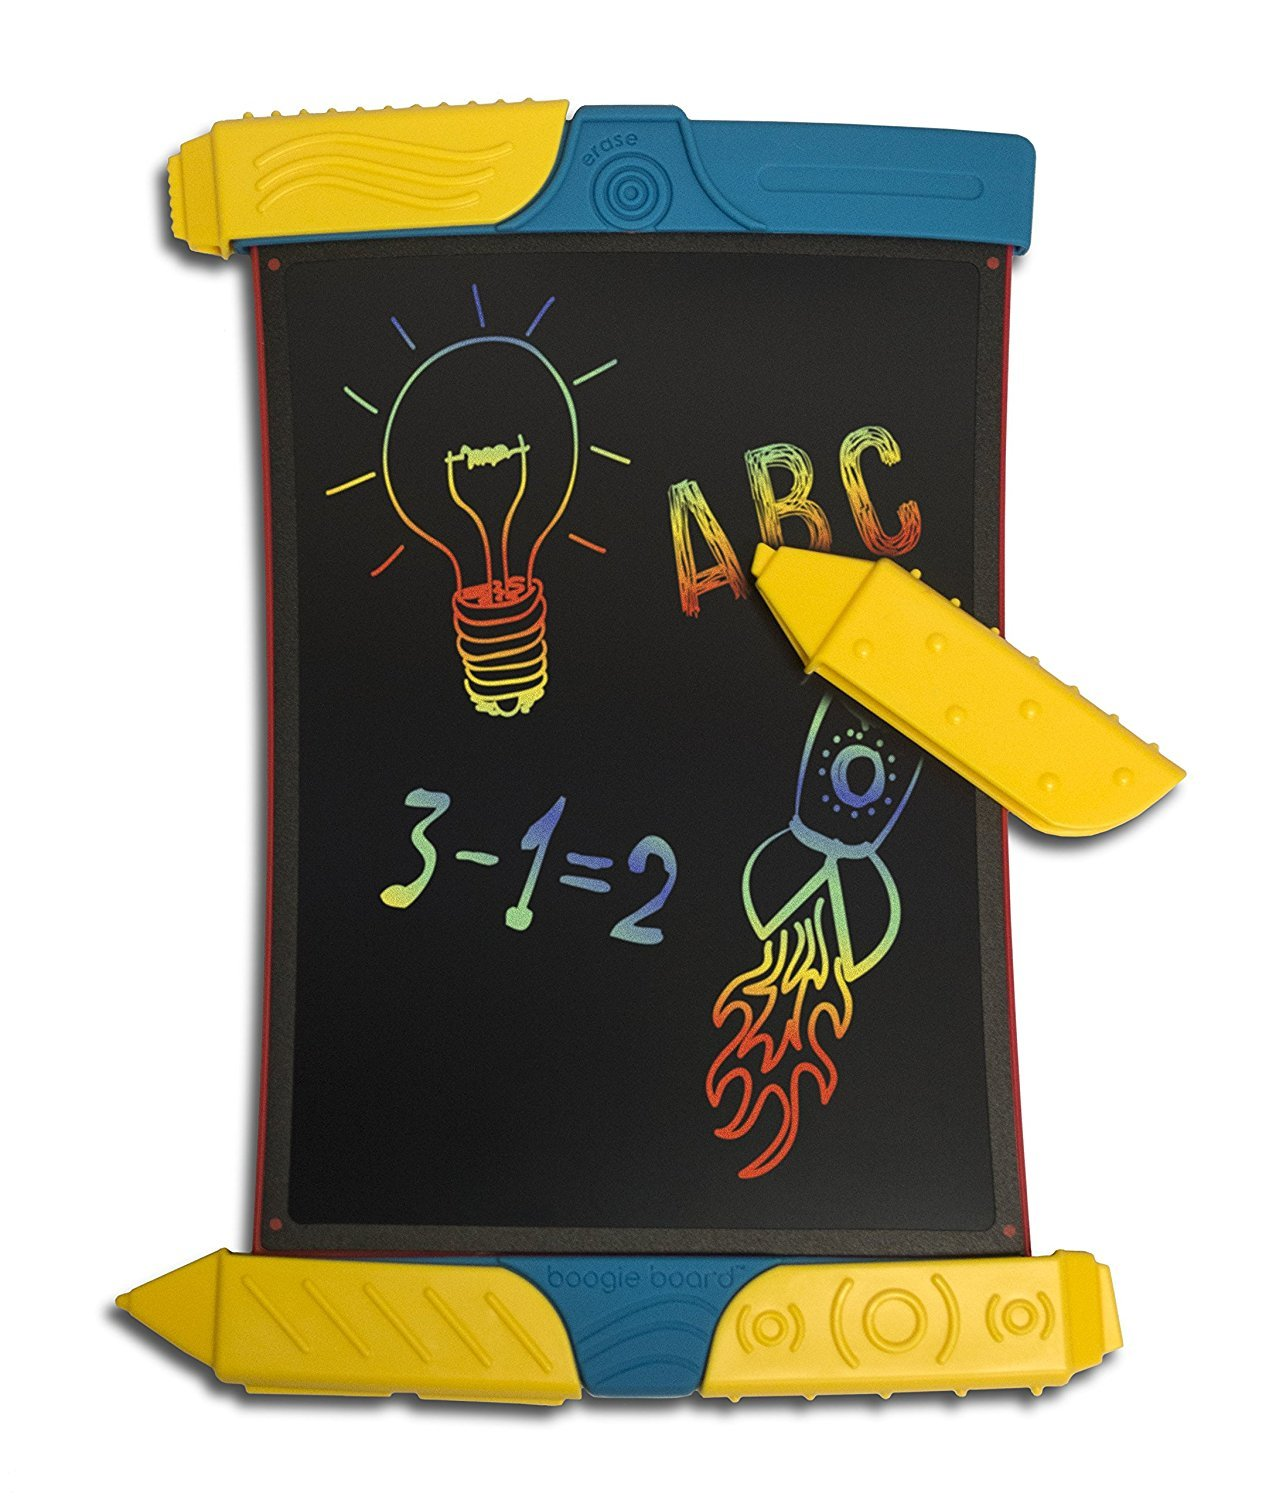 Boogie Board Scribble & Play LCD eWriter image